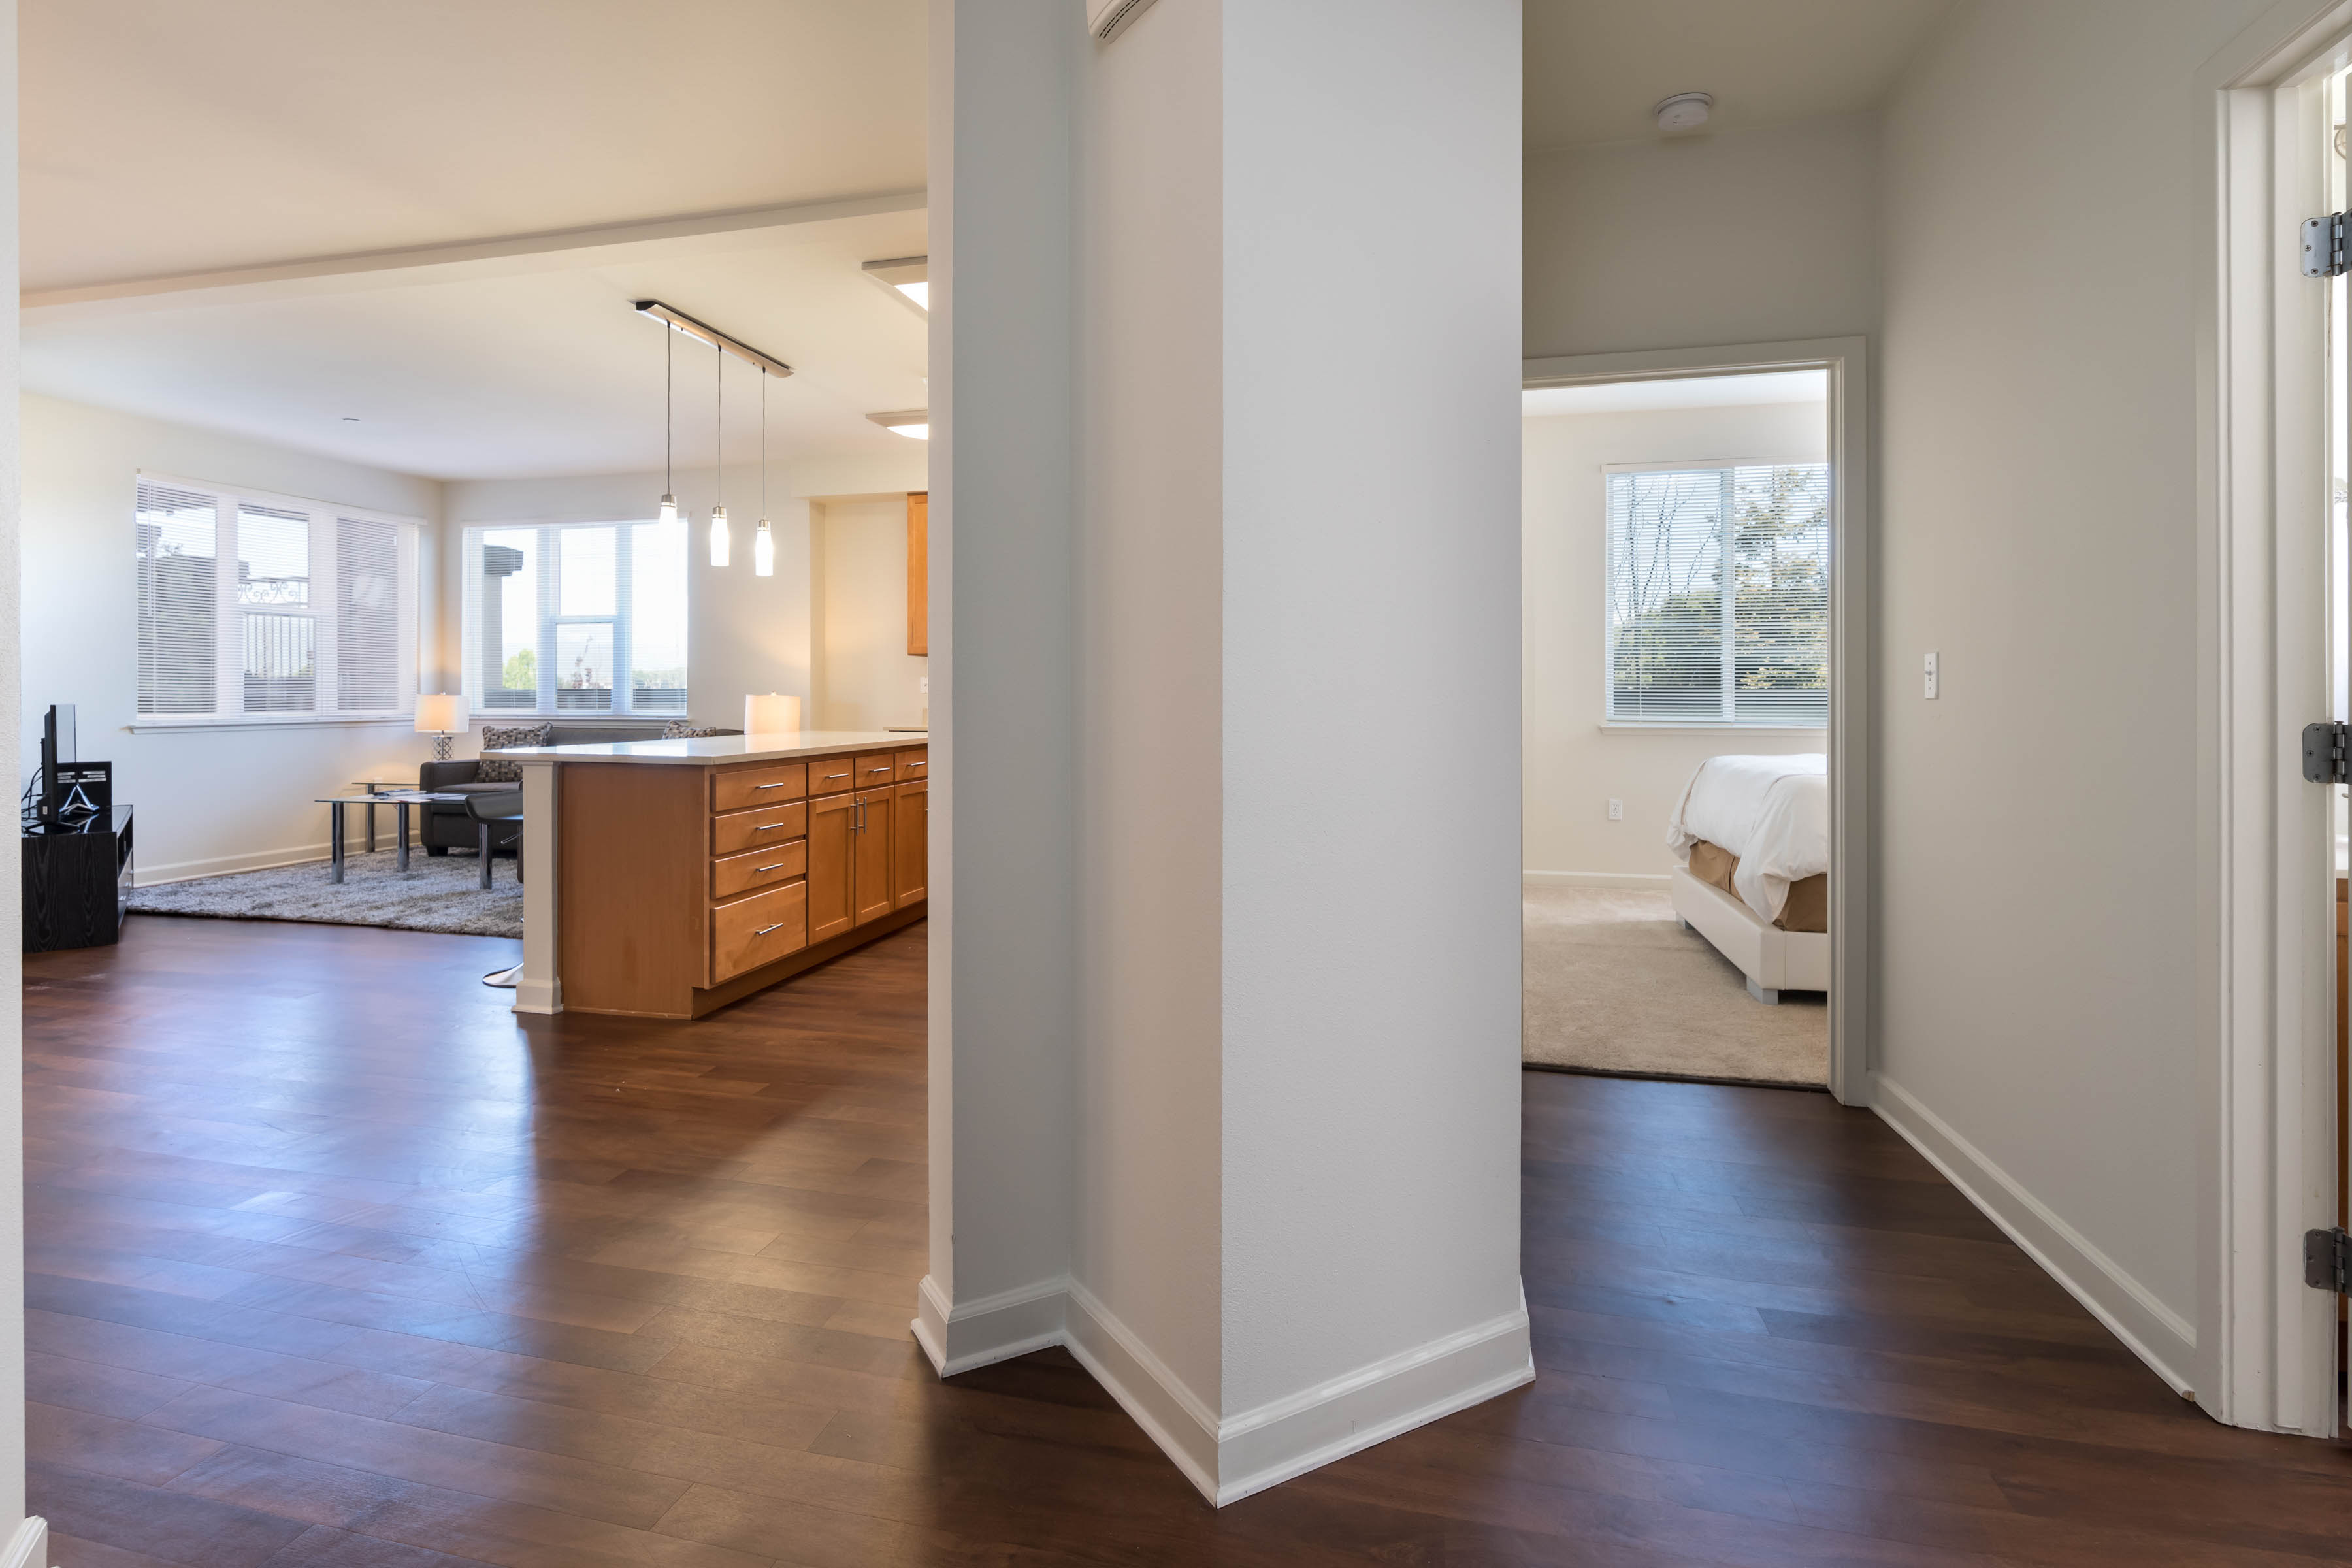 2 bedroom Sunnyvale